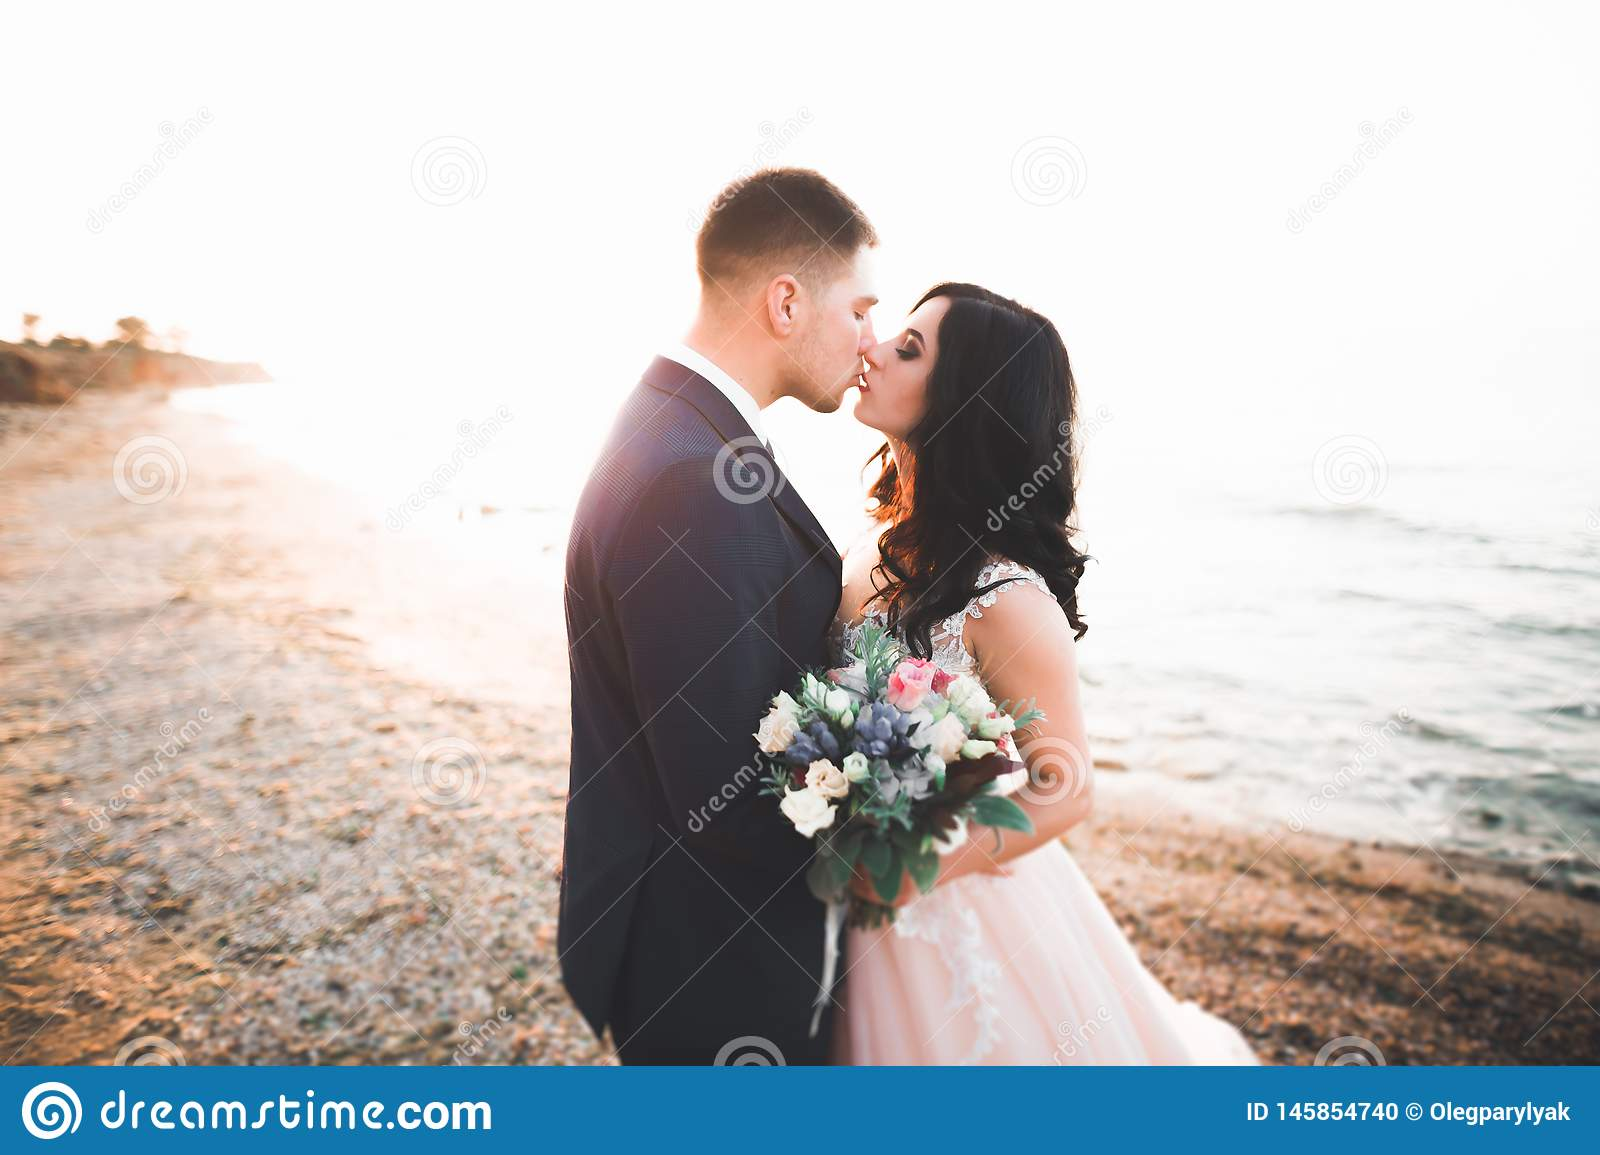 Happy And Romantic Scene Of Just Married Young Wedding Couple Posing On Beautiful Beach Stock Photo Image Of Bride Flowers 145854740